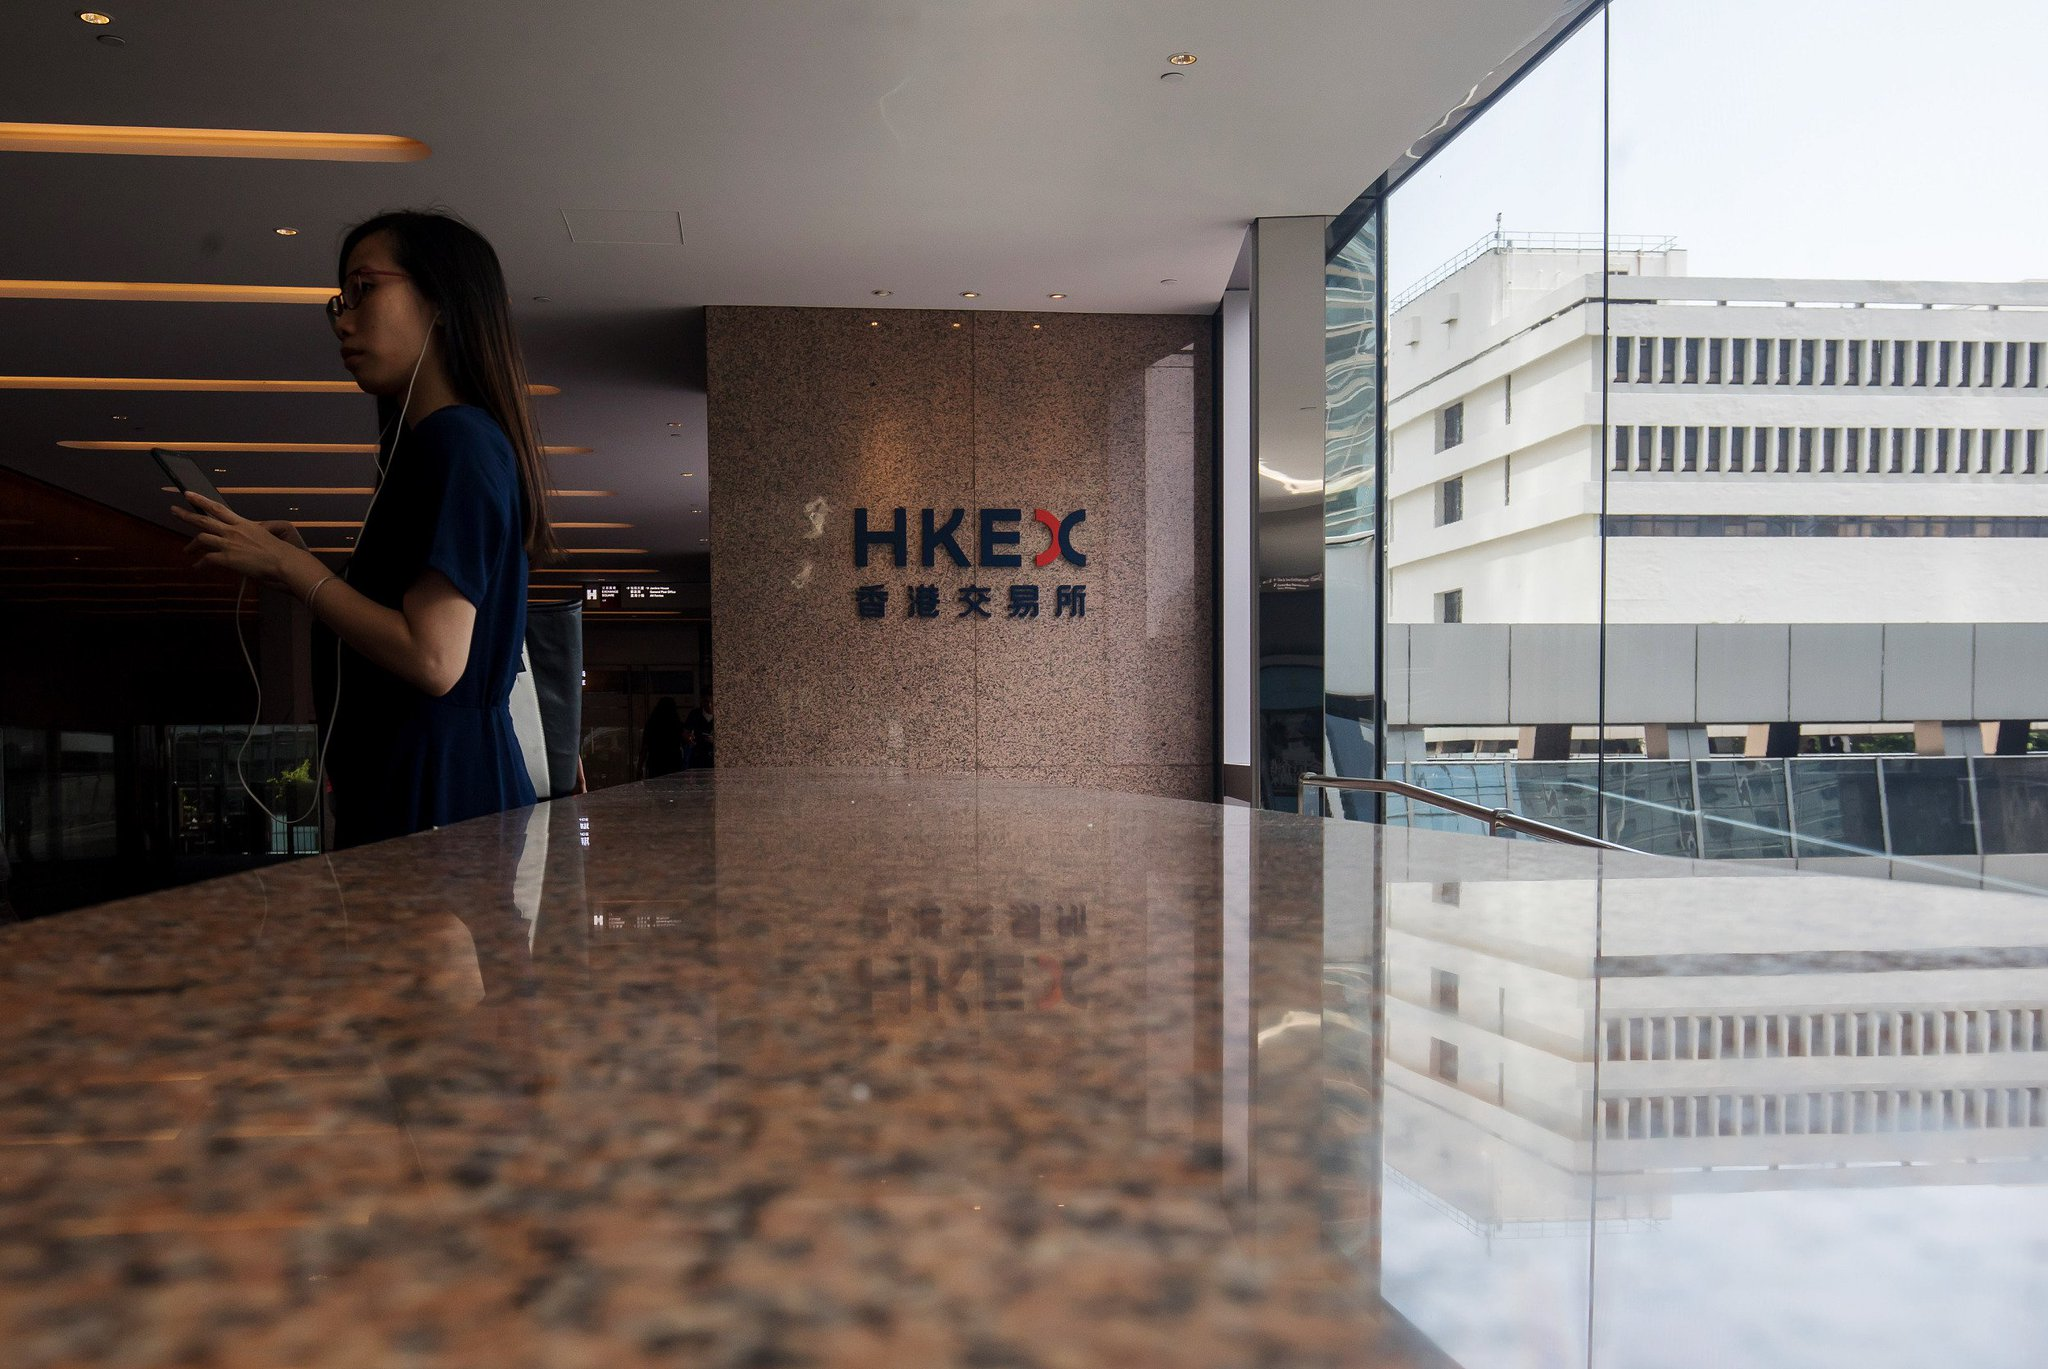 Hong Kong's stock market capitalization was HK$30.6 trillion at the end of September 2019, a decrease of 5 percent from HK$32.2 trillion at the end of September 2018: #HKEX https://t.co/zafj7f59wi